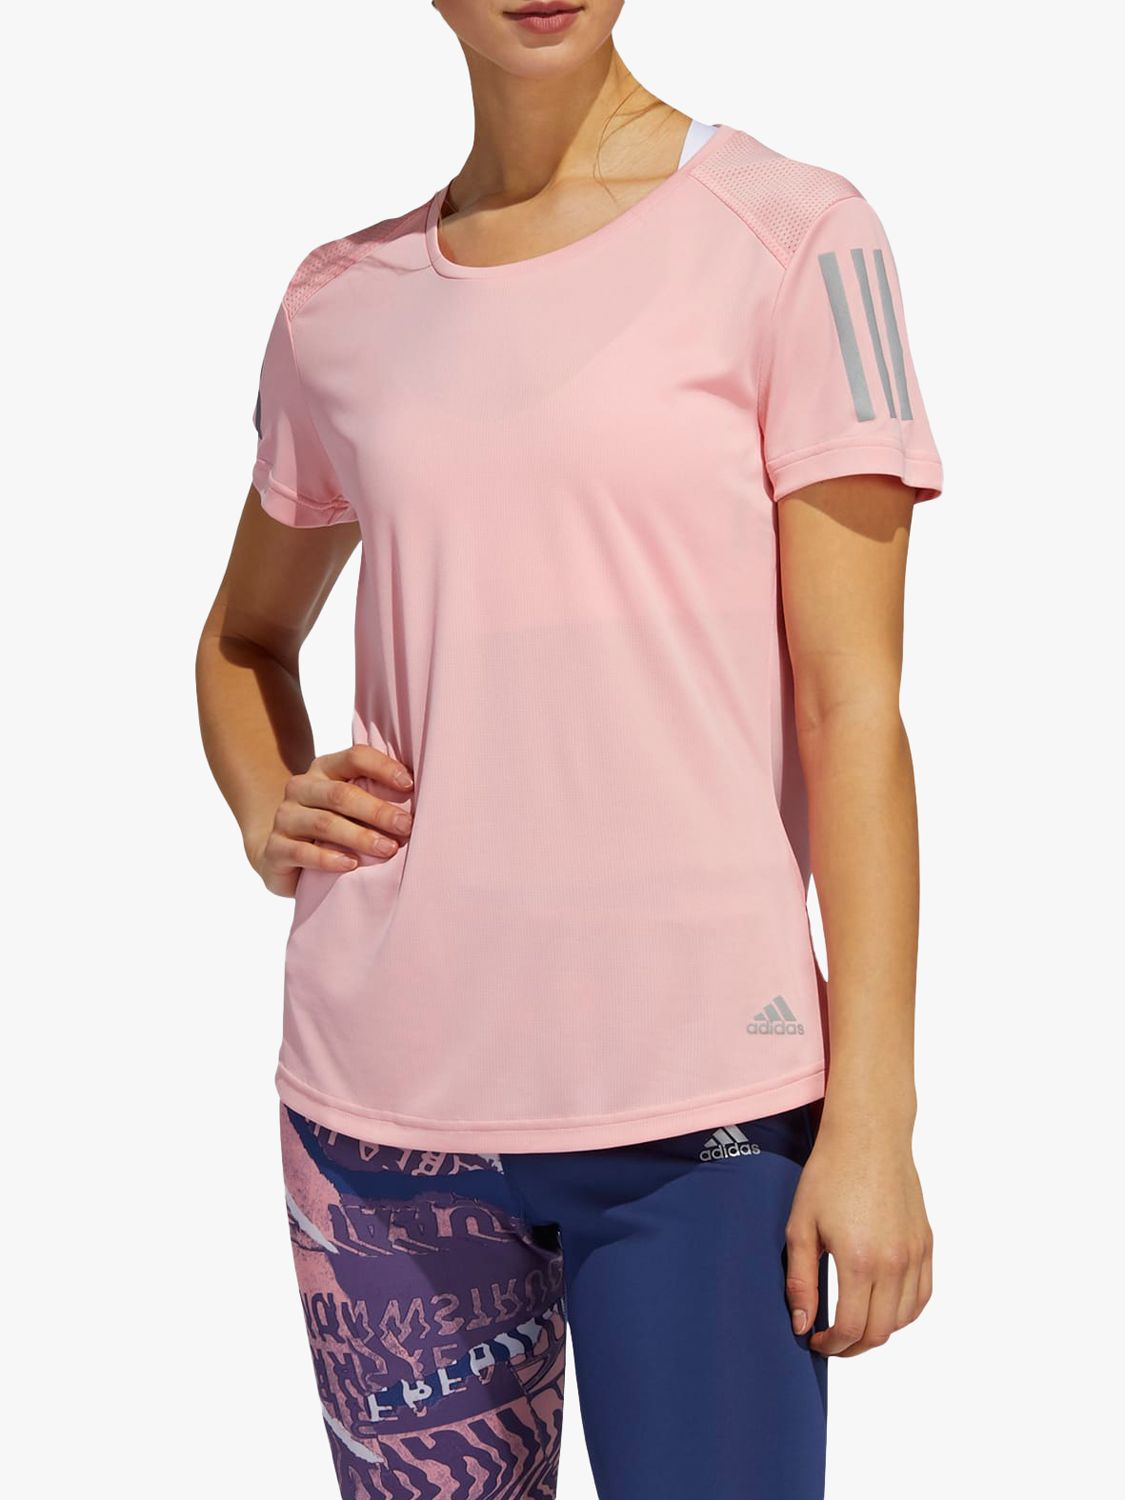 Adidas adidas Own The Run Short Sleeve Running Top, Glory Pink